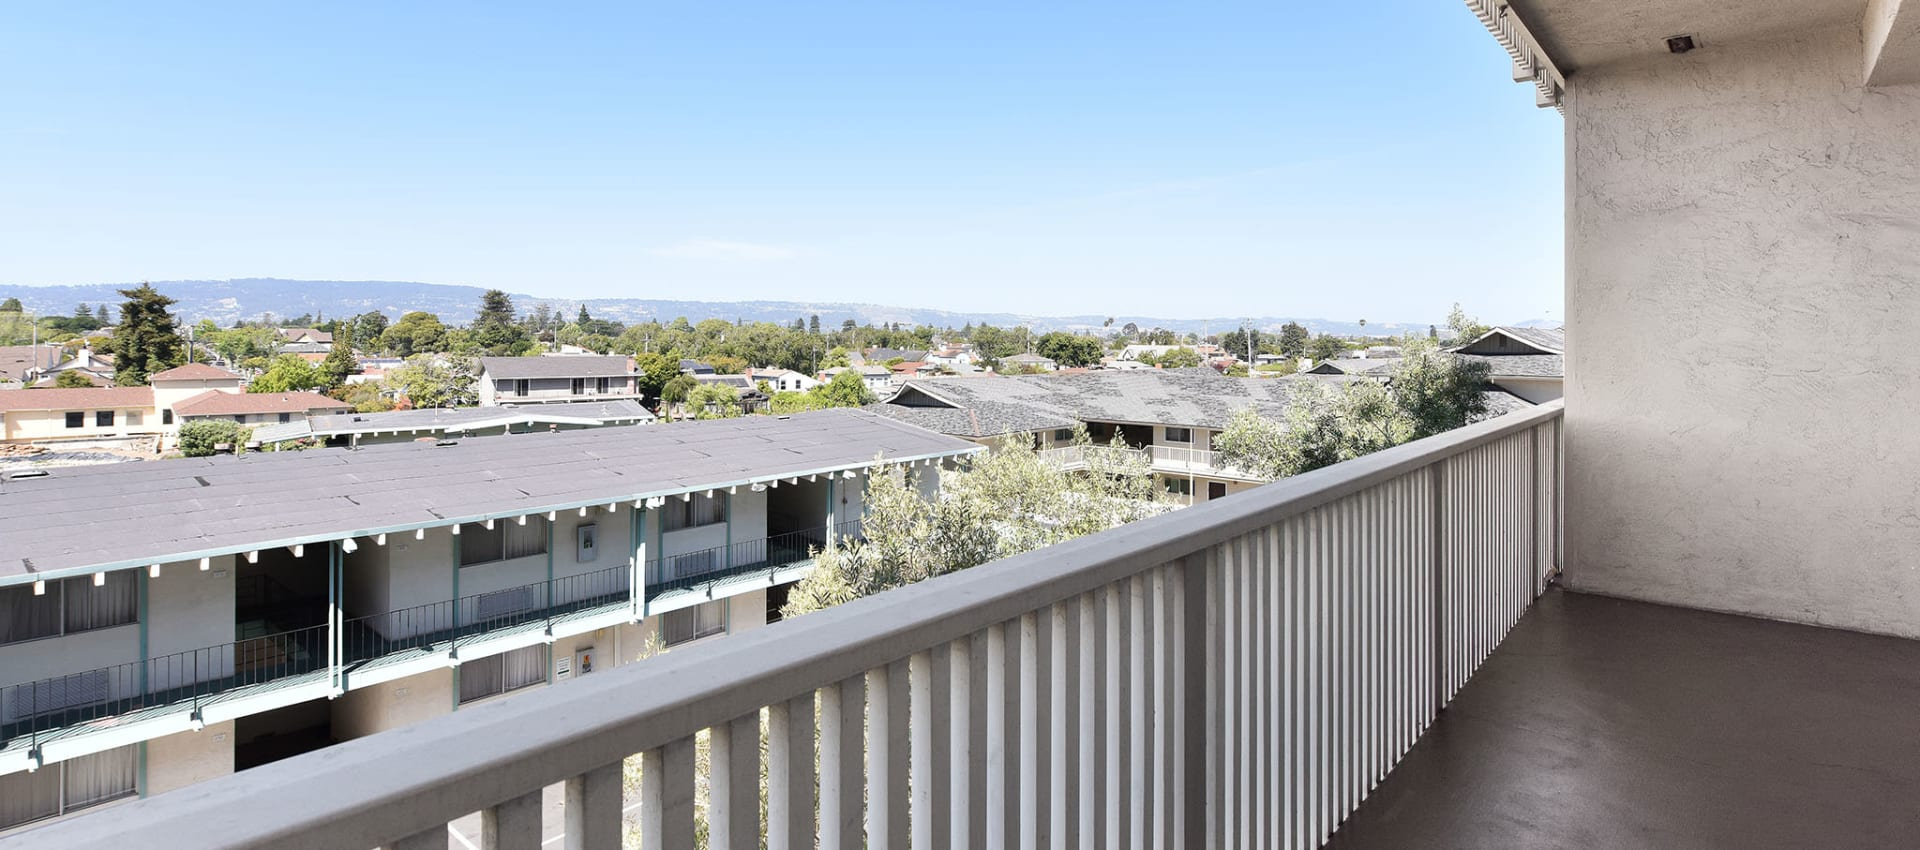 Patio with great view at apartments in Alameda, CA